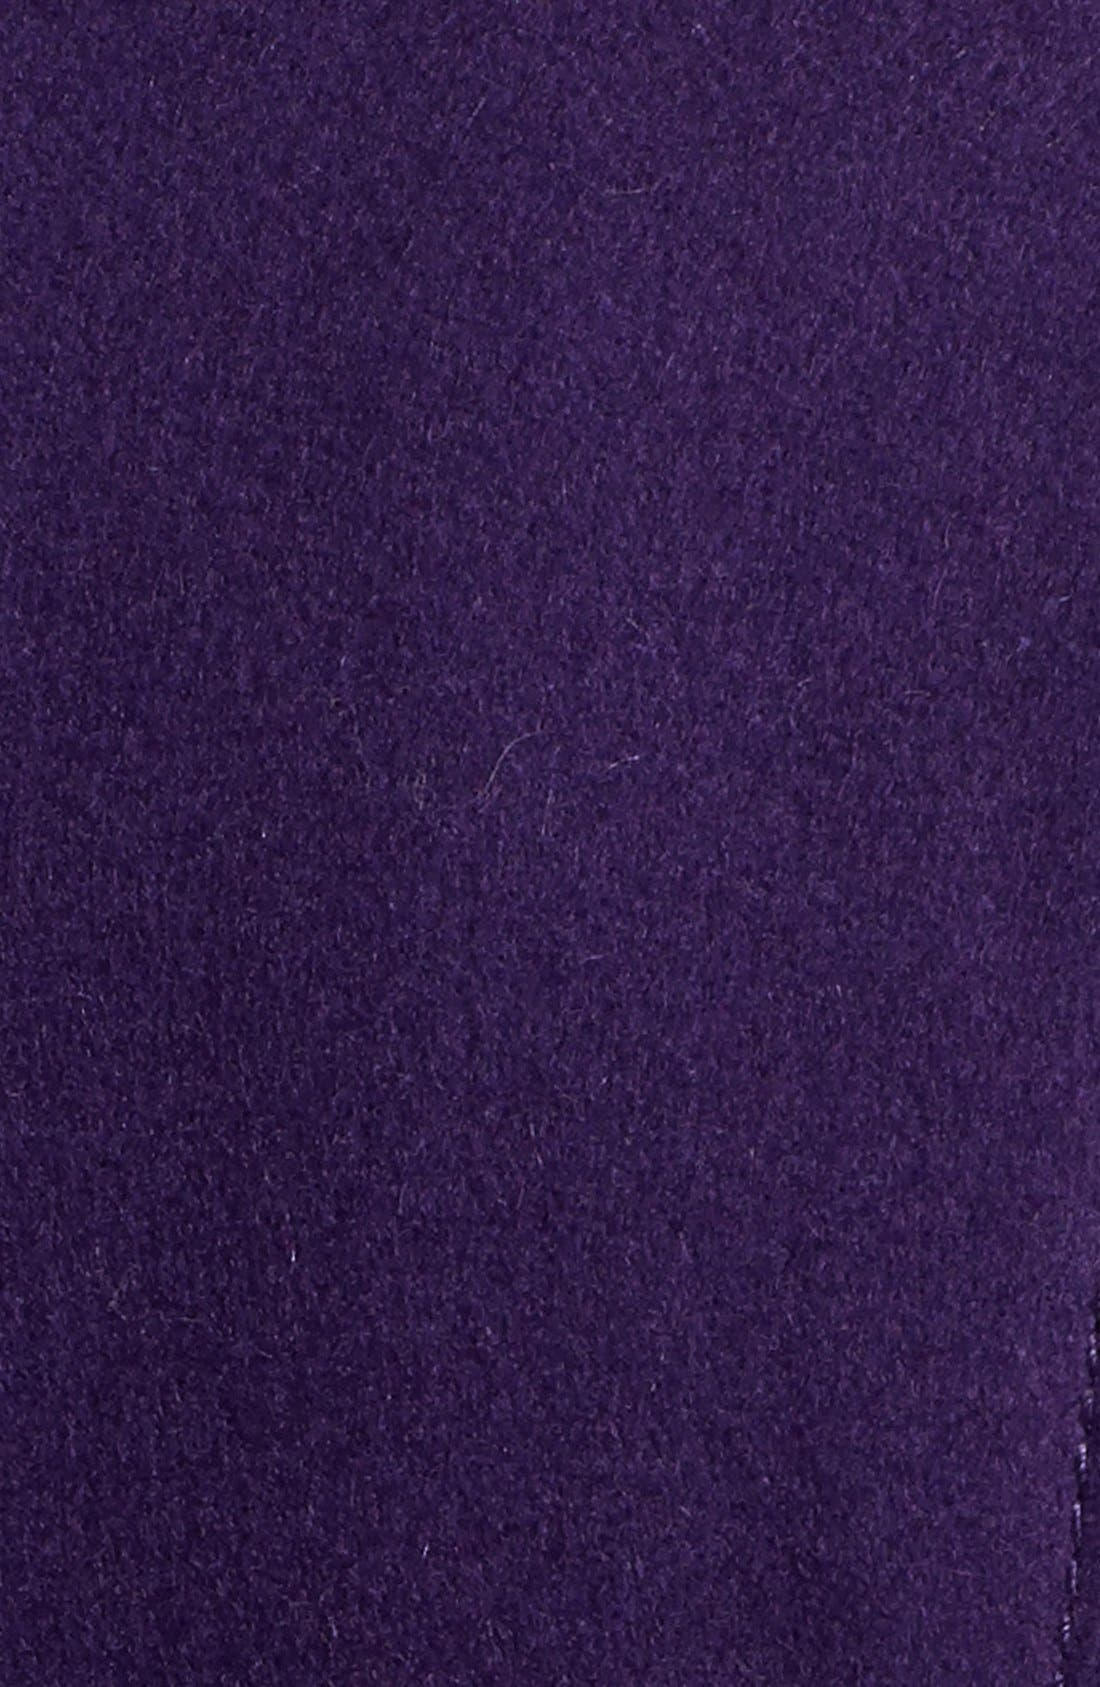 Alternate Image 3  - GUESS Exaggerated Collar Wool Blend Coat (Petite)